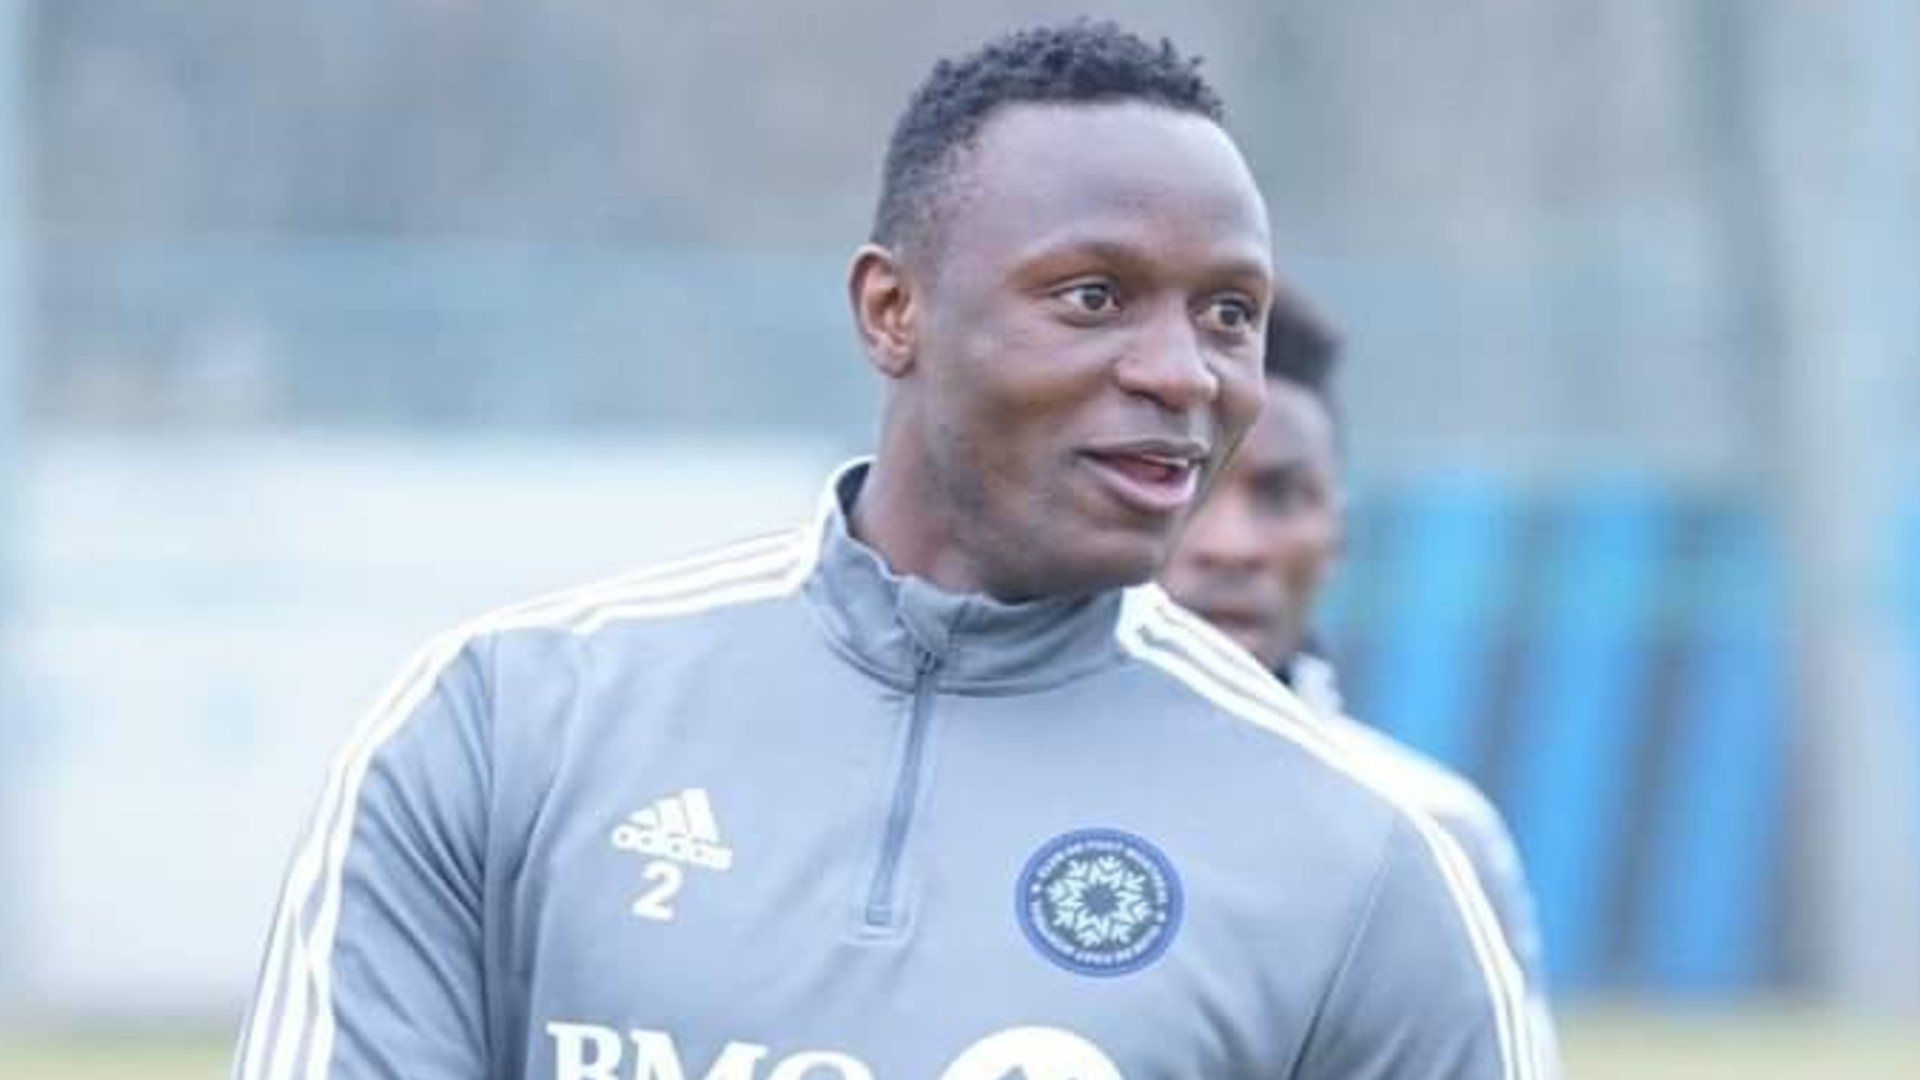 Fan View: 'Victor Wanyama loves his spaghetti' - CF Montreal midfielder trades jersey for pasta